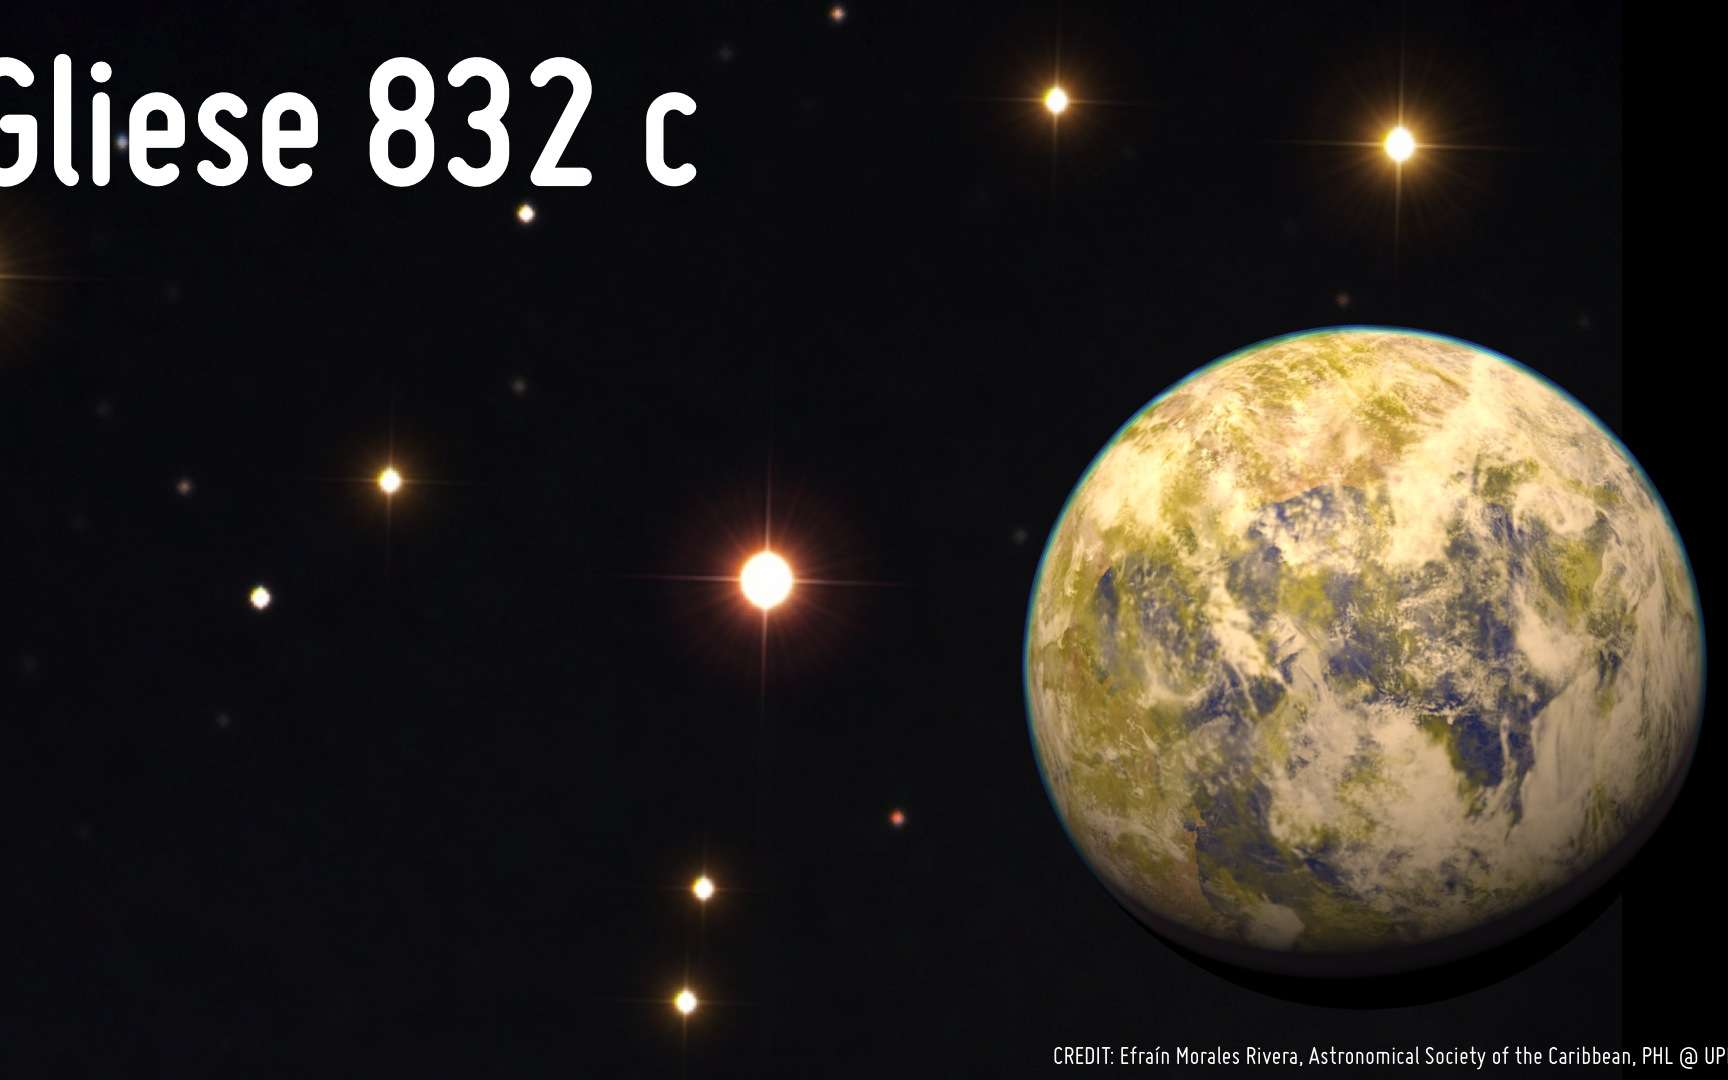 Illustration de la superterre Gliese 832c. À l'arrière-plan : photo de Gliese 832, naine rouge visible dans la constellation australe de la Grue, à 16 années-lumière de la Terre. © Efraín Morales Rivera (Astronomical Society of the Caribbean), PHL, UPR Arecibo